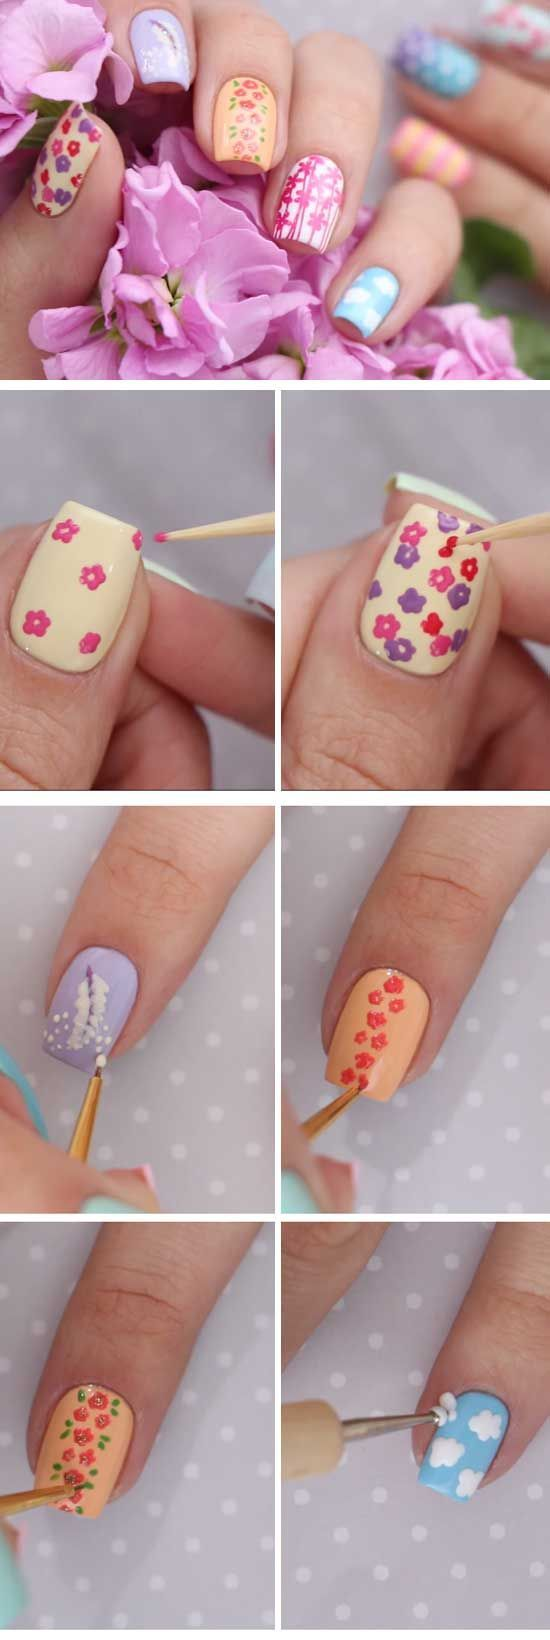 easy spring nail designs for short nails springnaildesigns